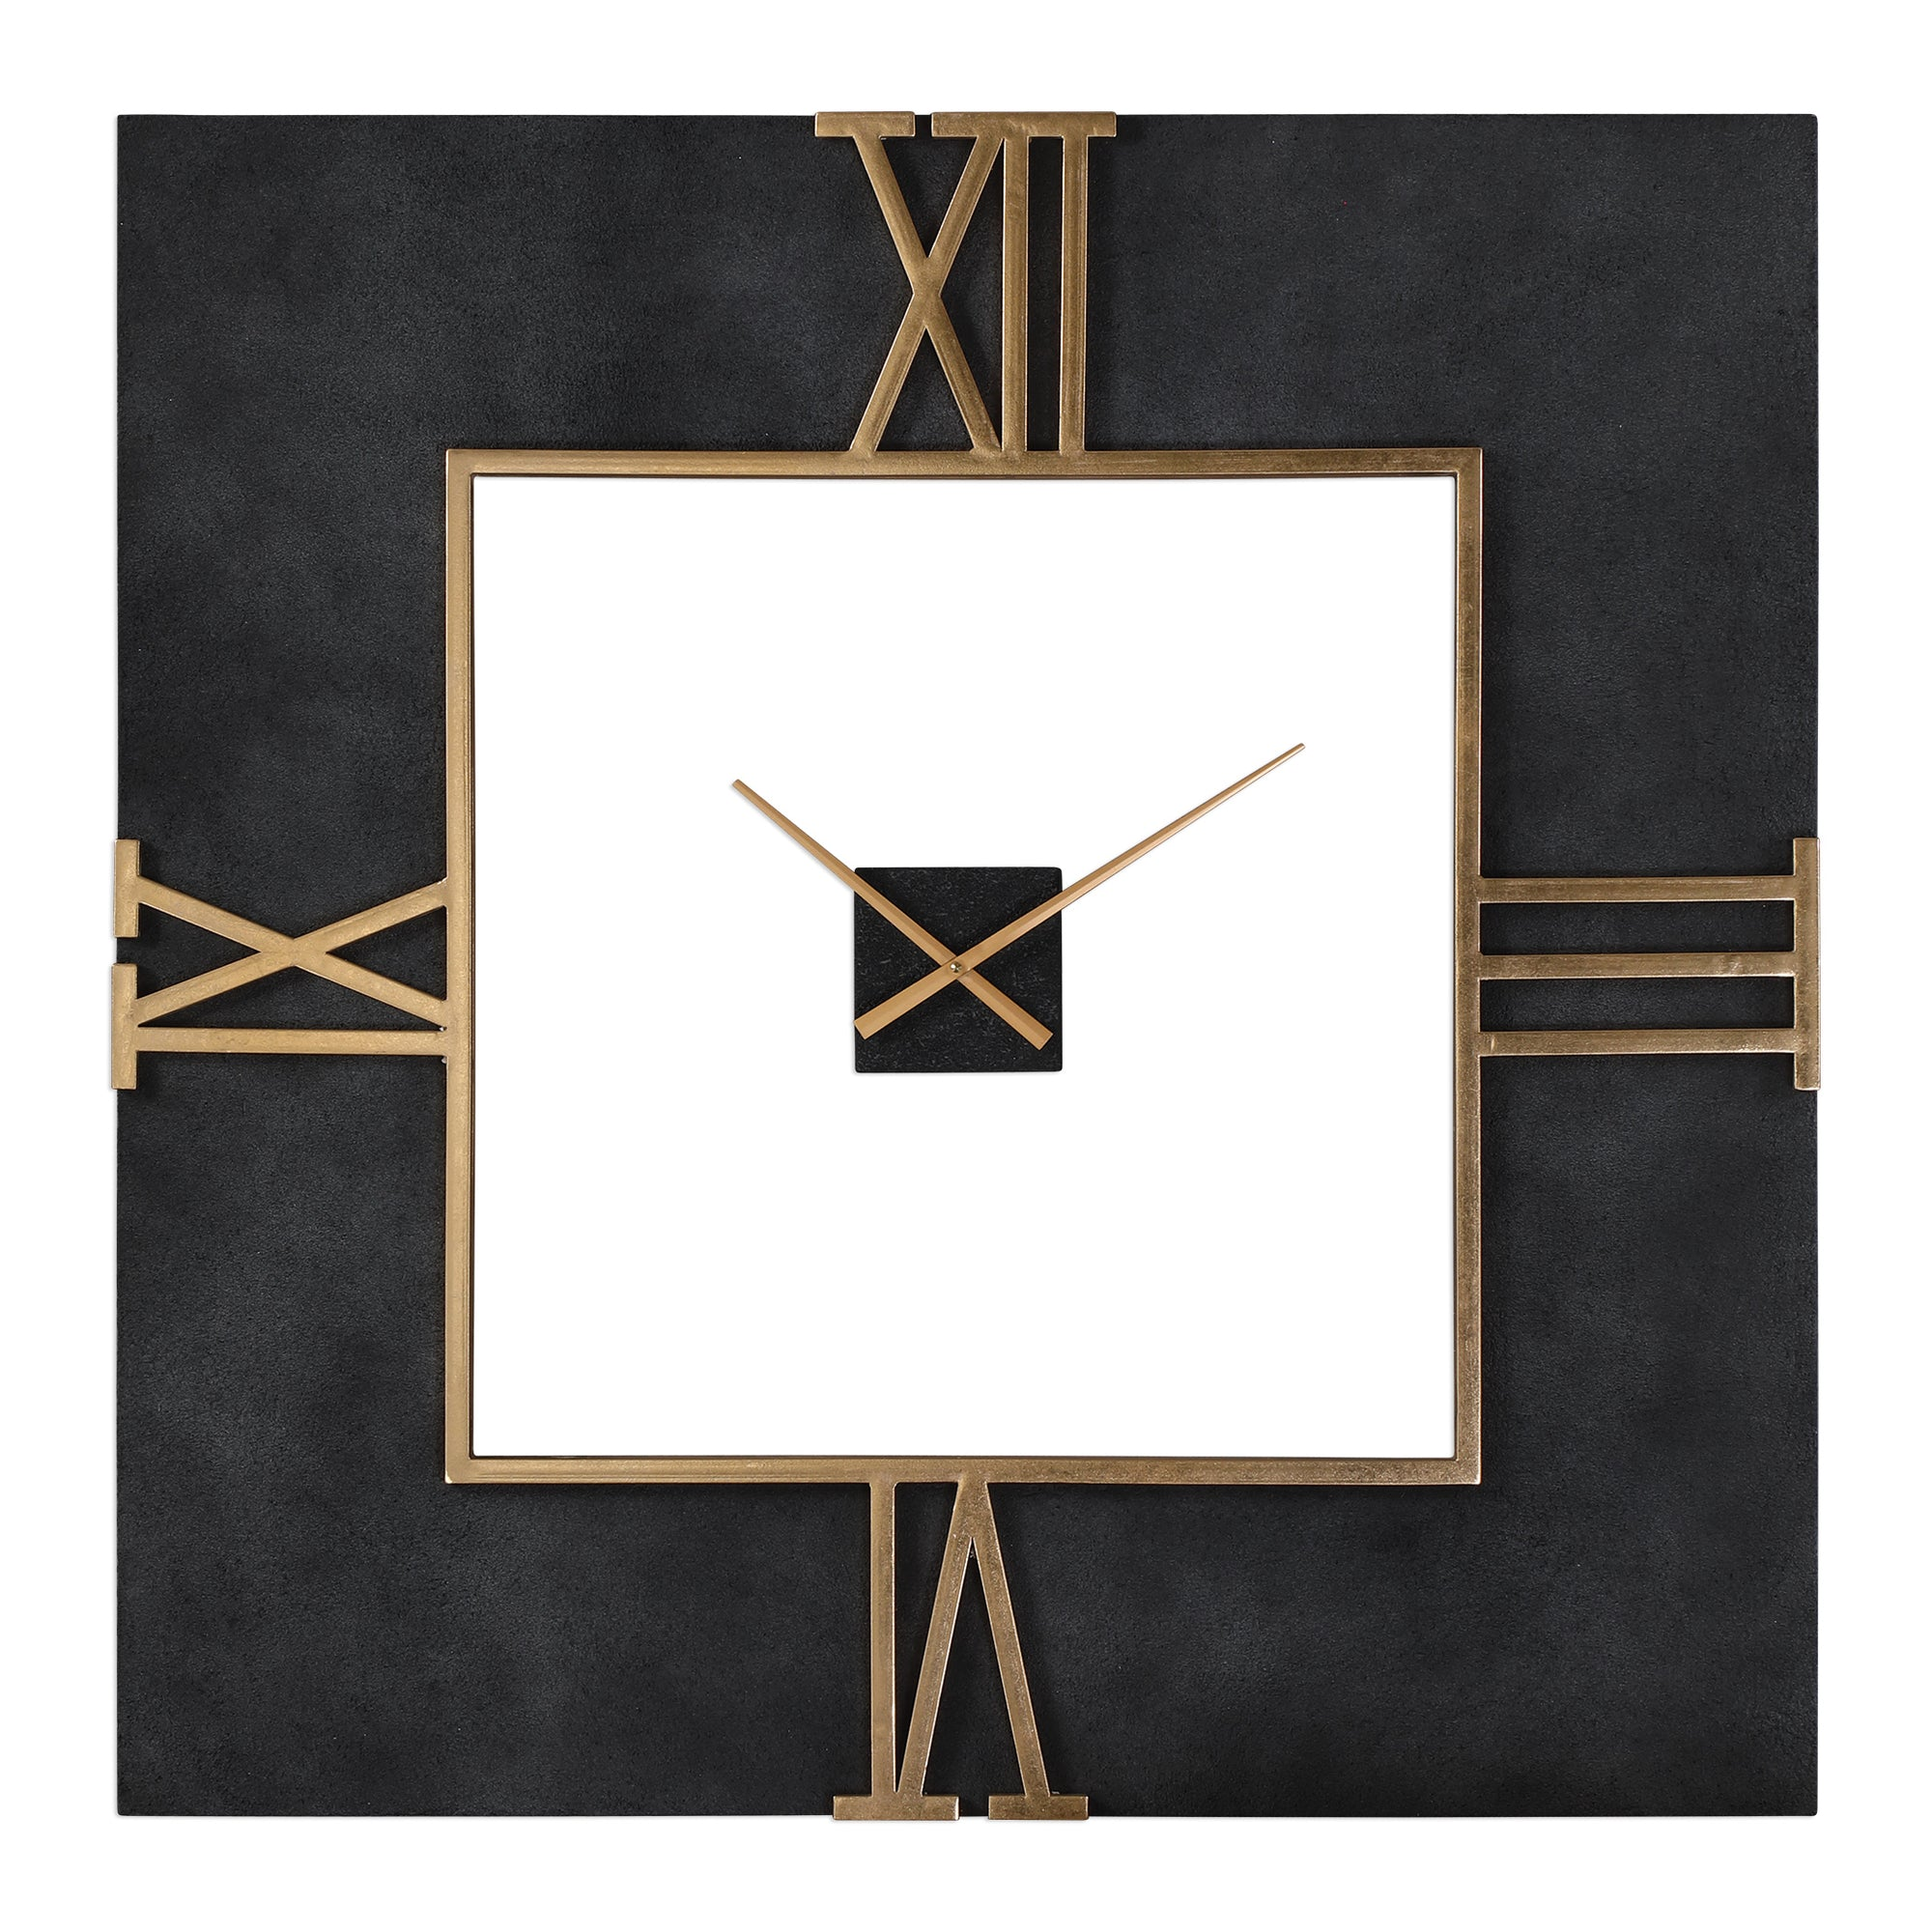 Mudita Wall Clock